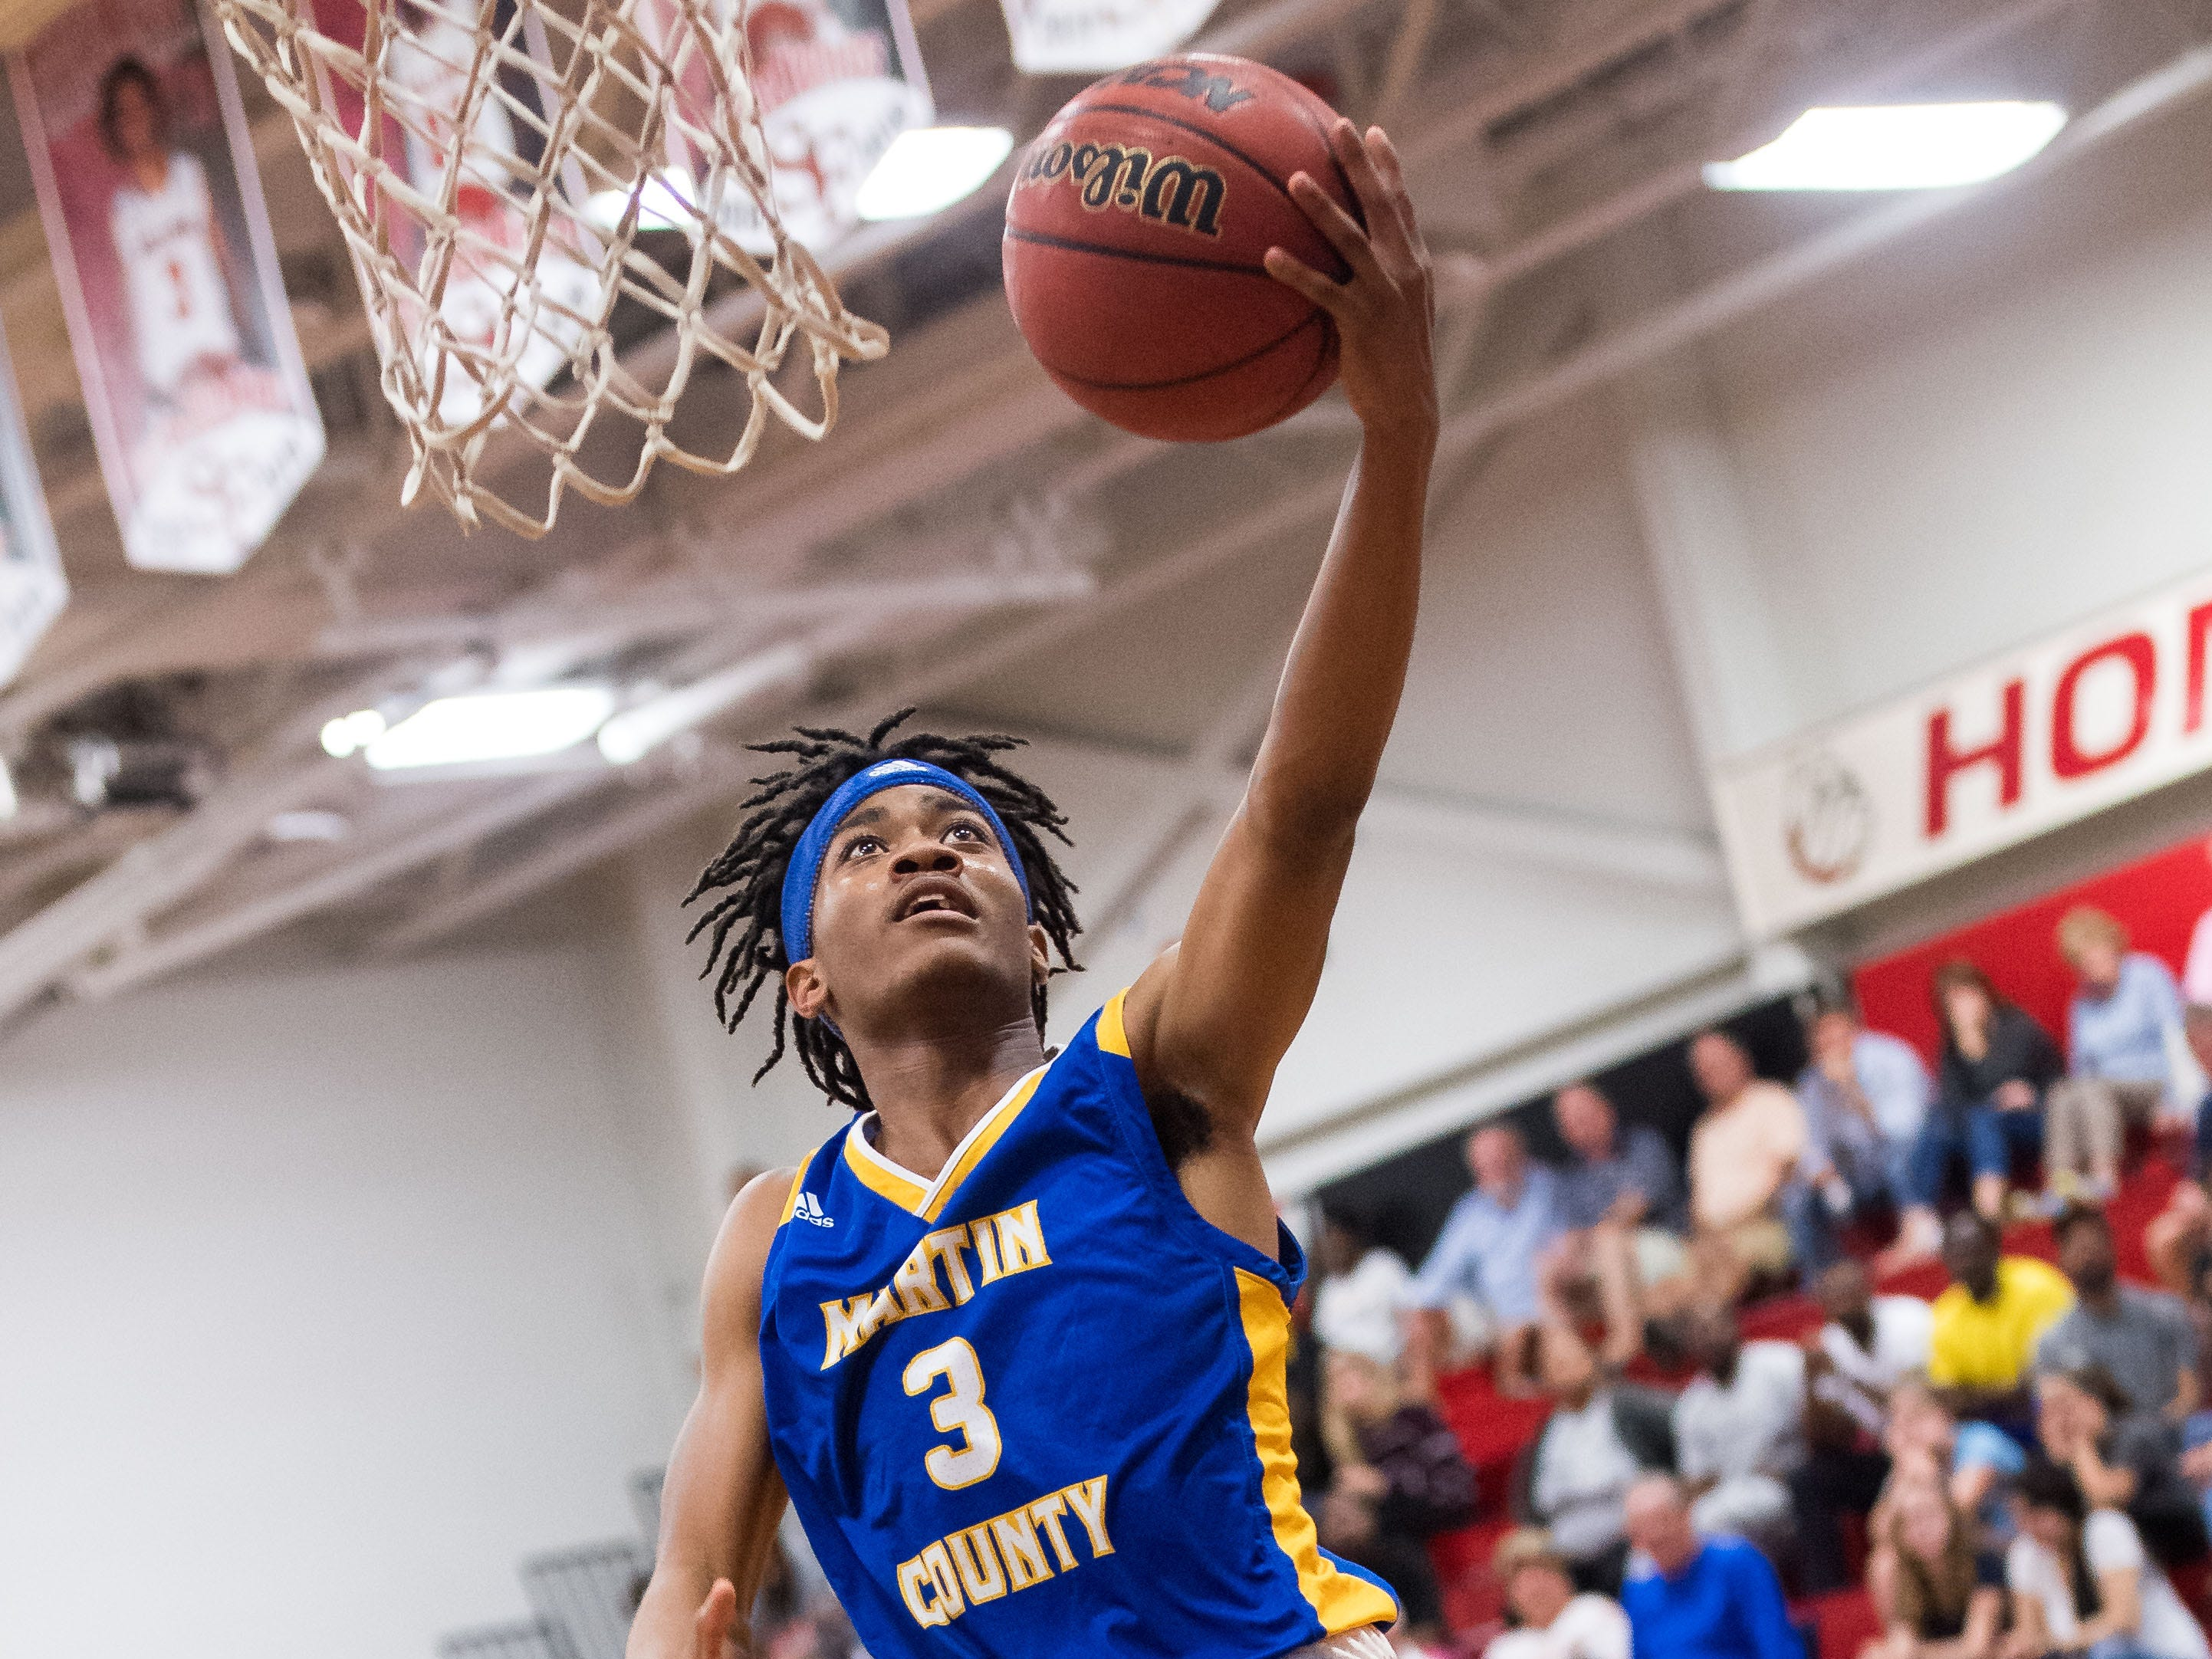 Martin County's Jevo Brown goes up for a shot in the third period against Martin County during the high school boys basketball game Wednesday, Feb. 6, 2019, at South Fork High School in Tropical Farms.